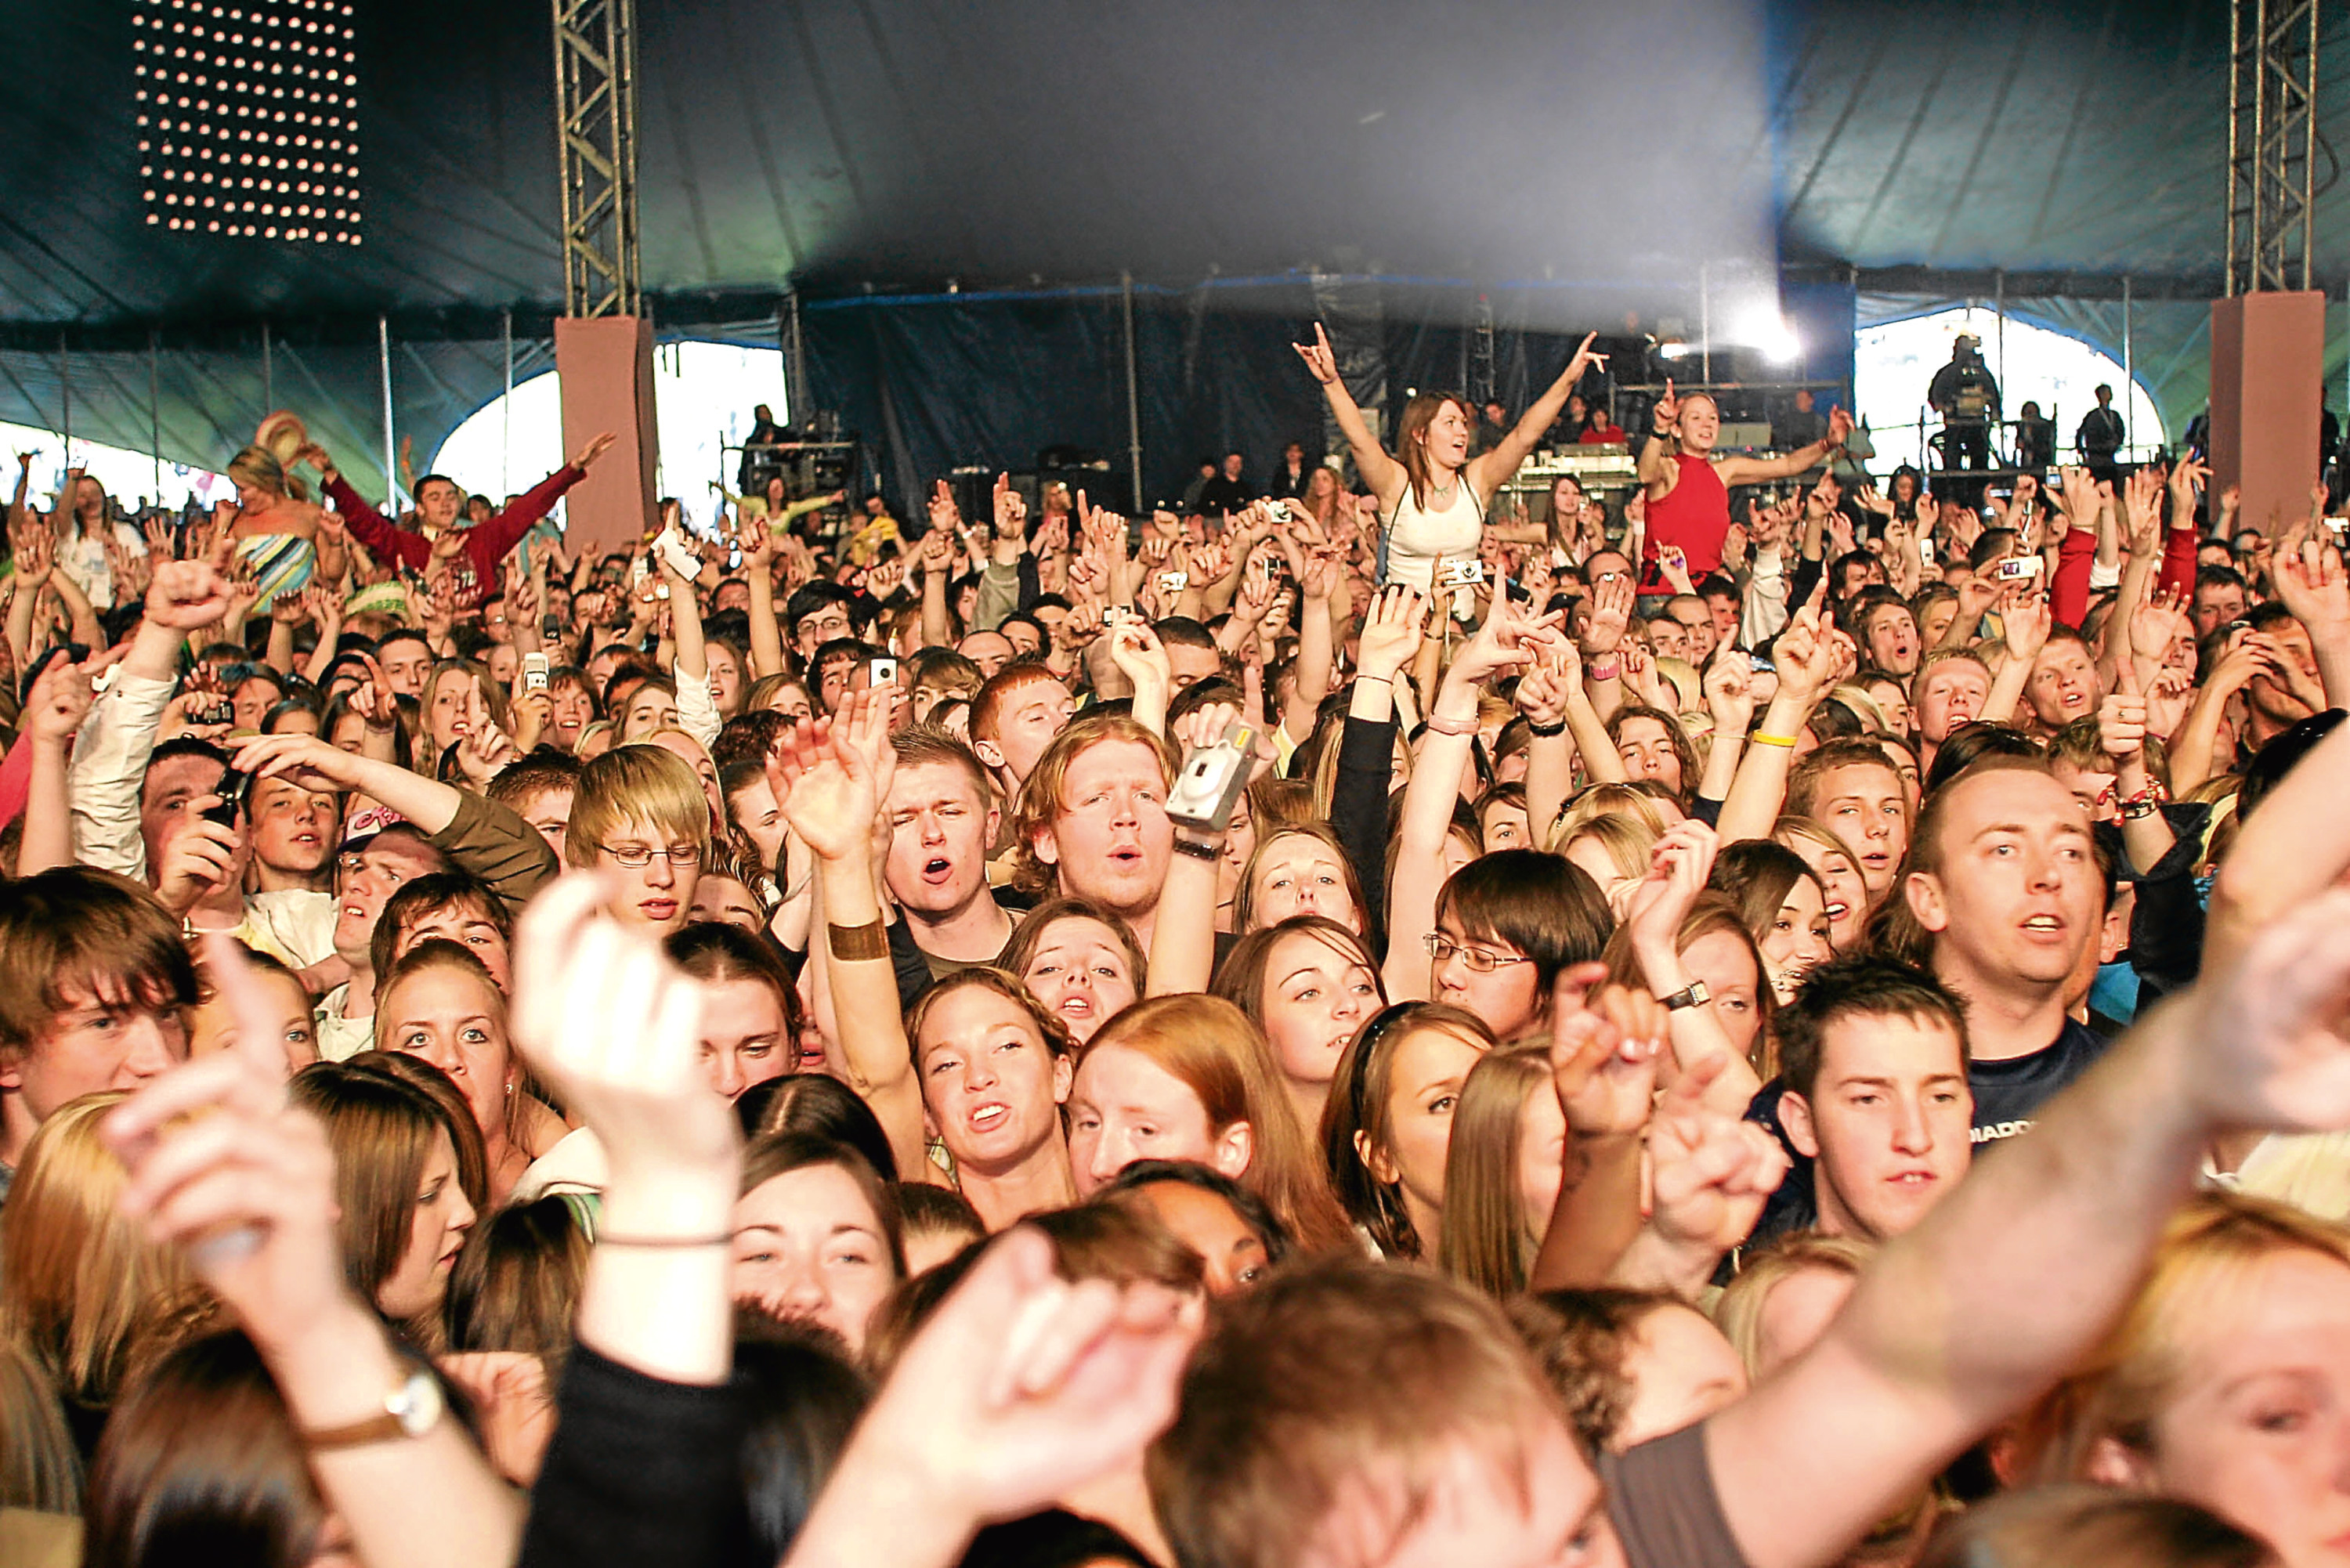 The crowd enjoying the Radio 1 Big Weekend held at Camperdown Park in 2006.